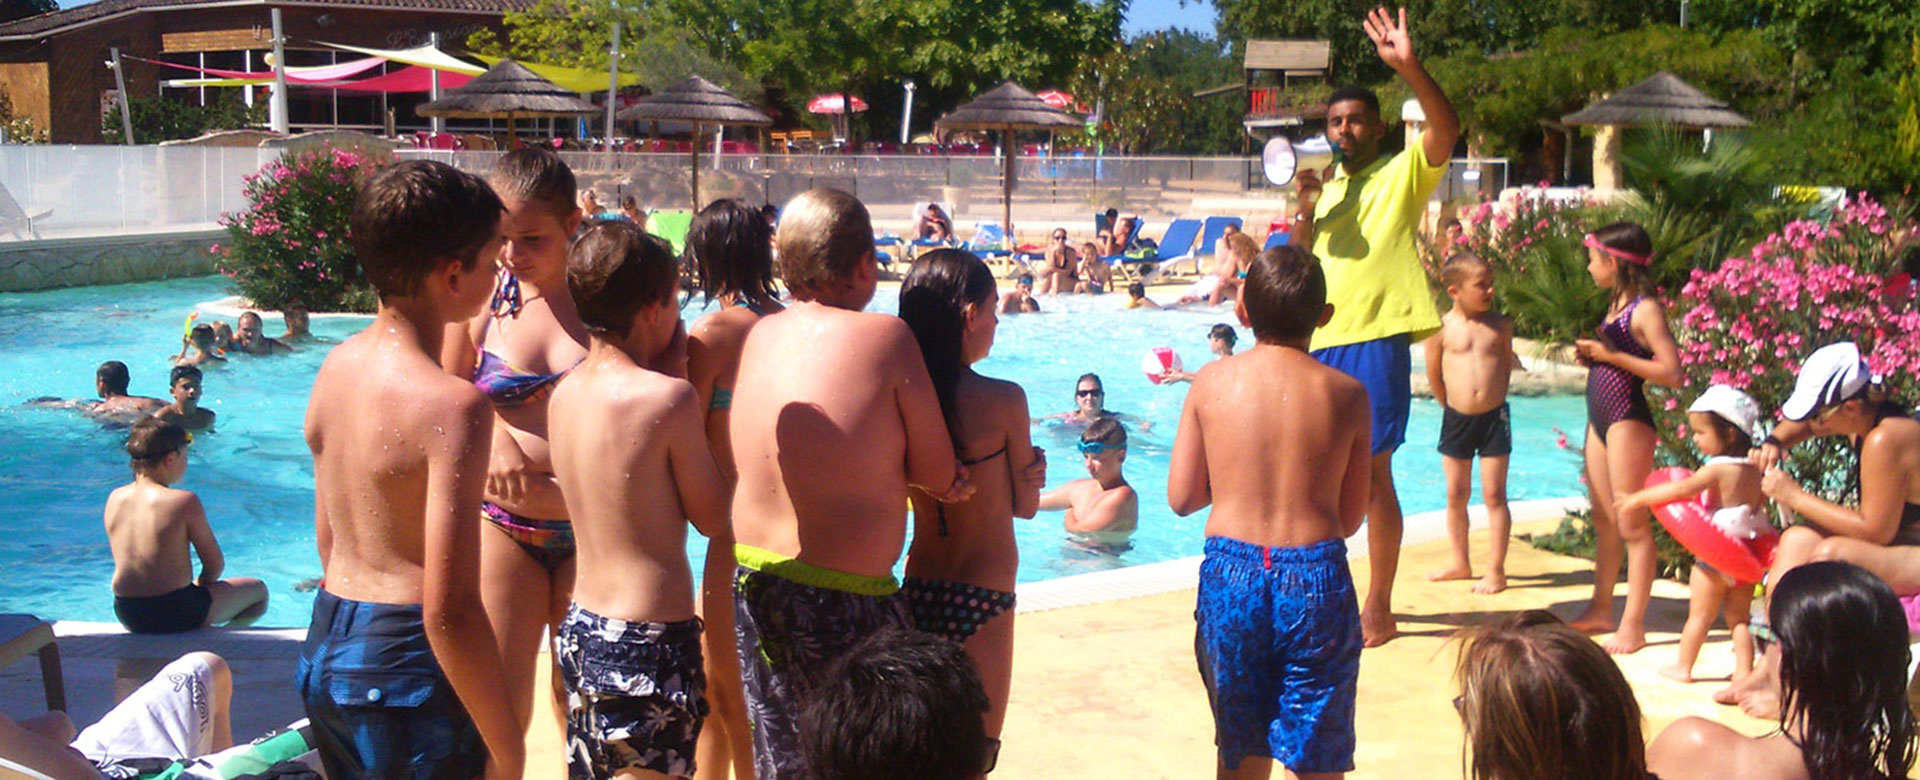 Aquatic area's activities at camping l'Évasion located in the Lot